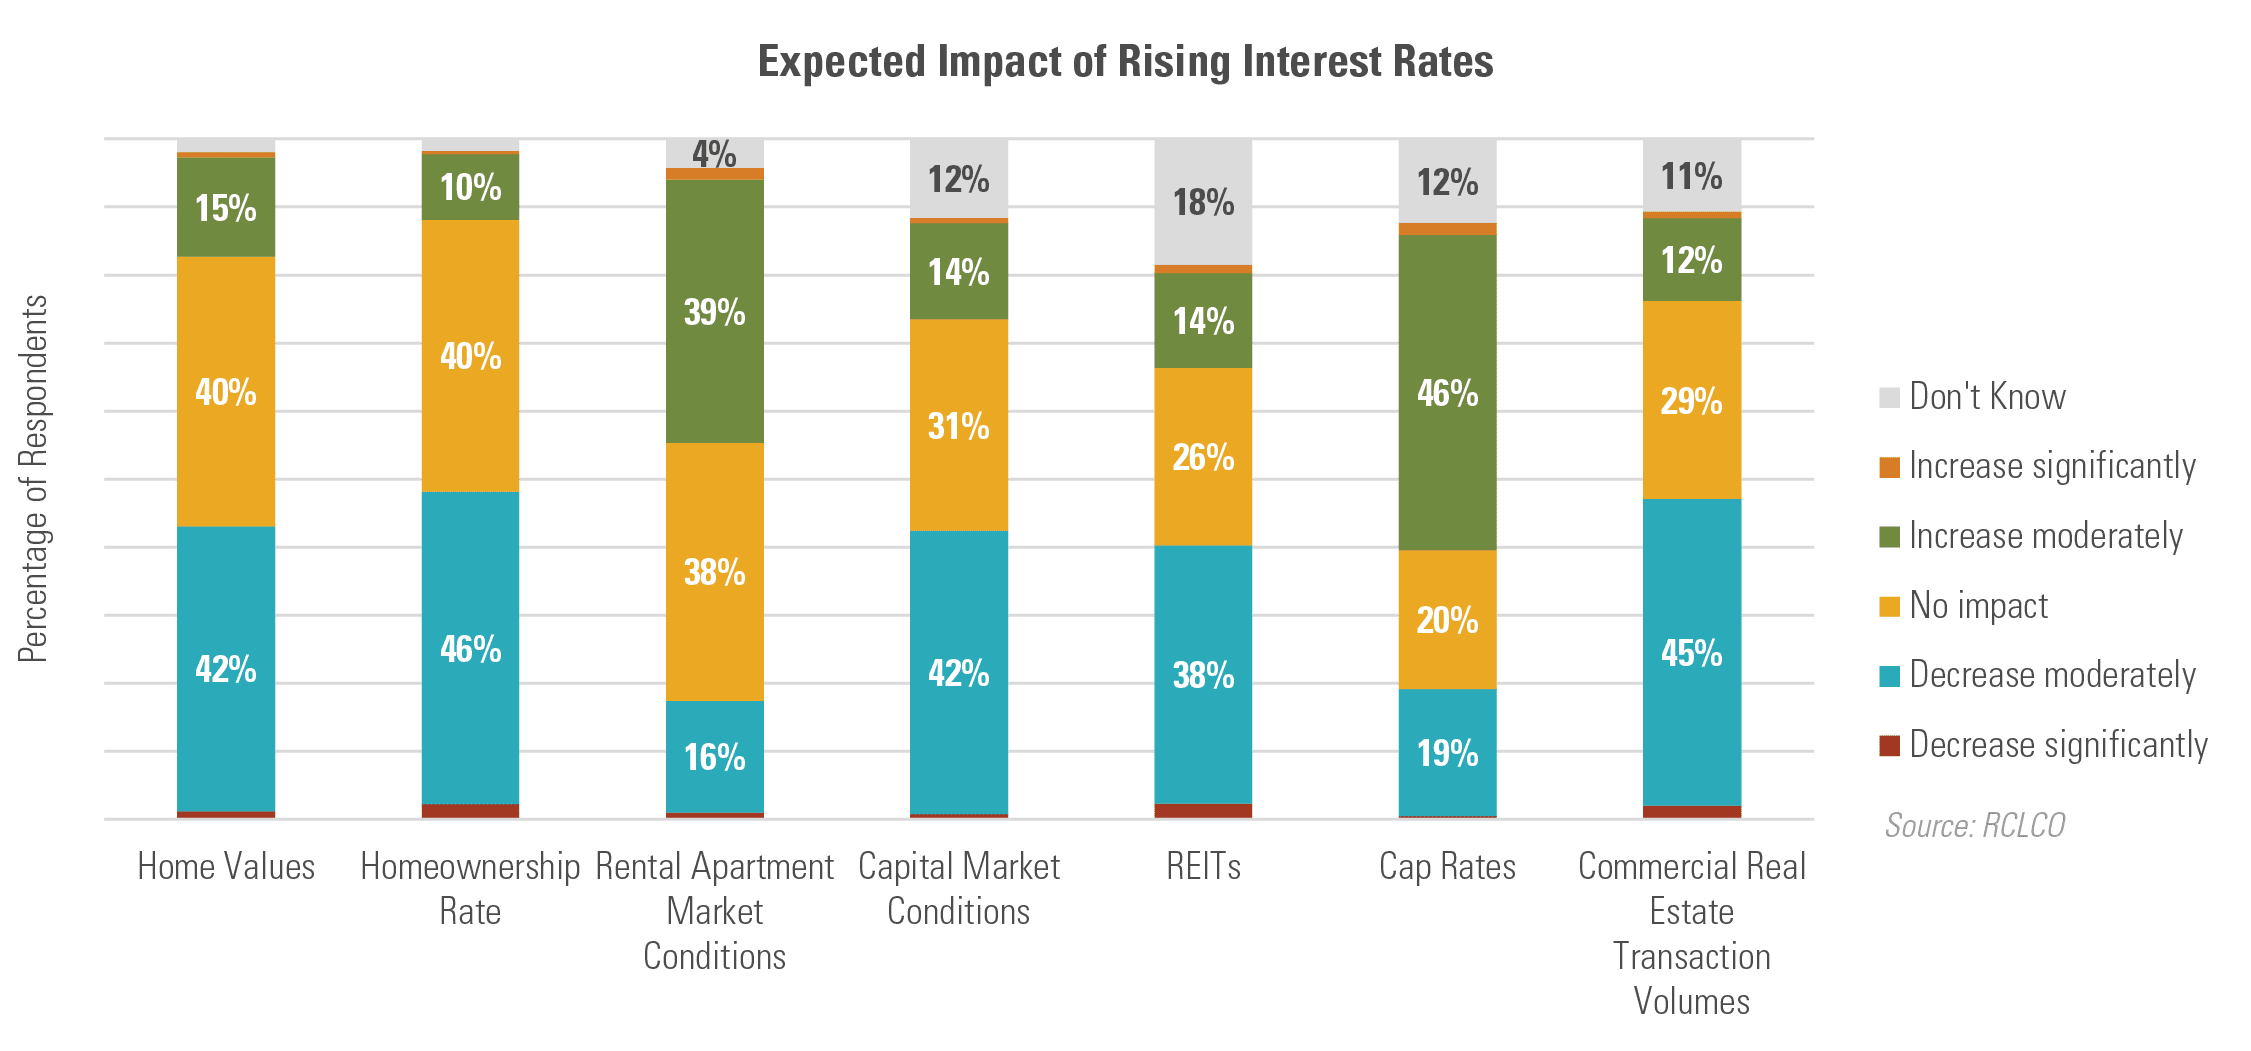 Expected Impact of Rising Interest Rates